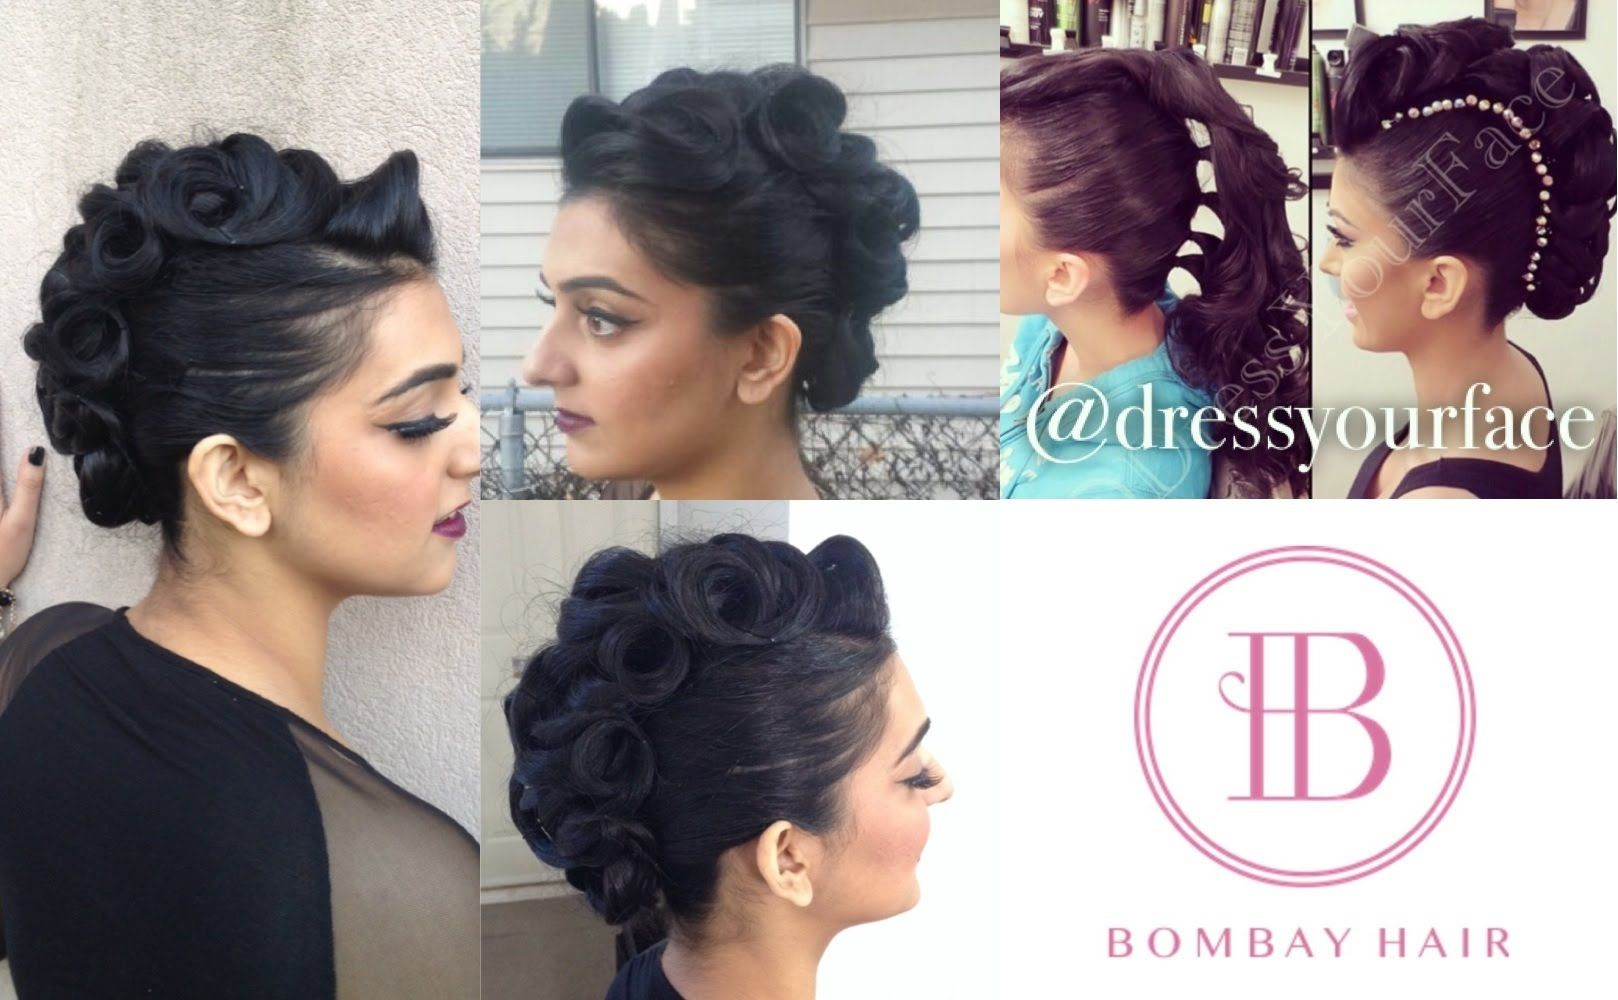 Dressyourface Inspired Faux Hawkmohawk Updo Hairstyle Tutorial Ft